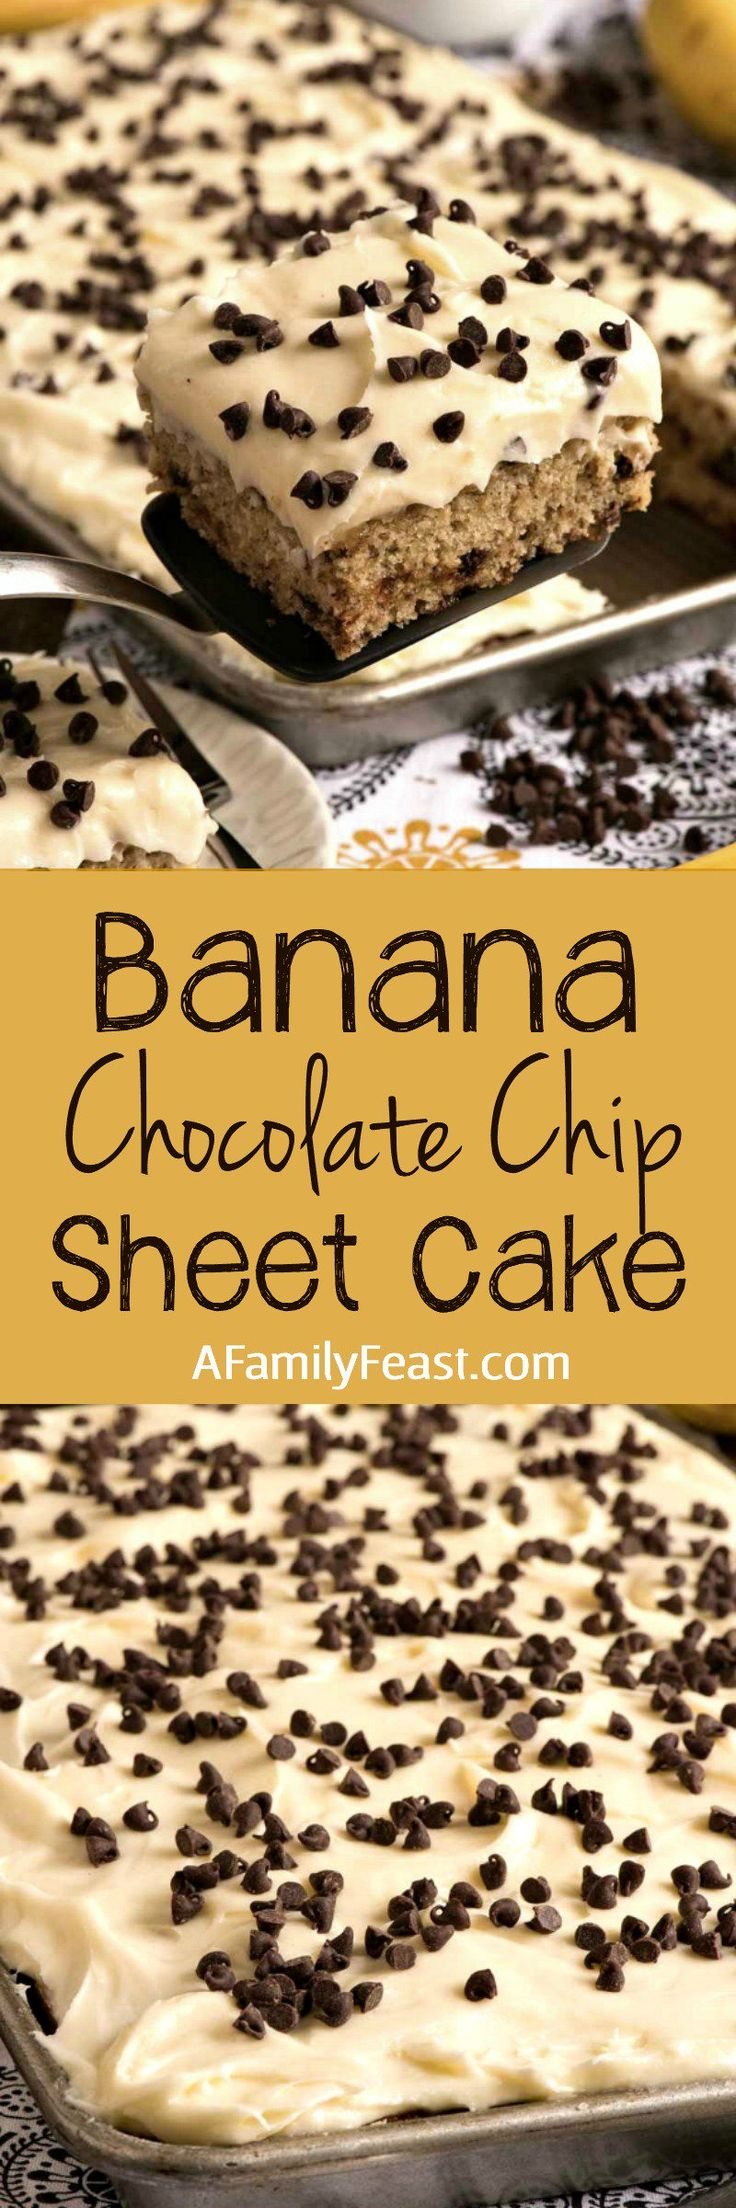 Banana Chocolate Chip Sheet Cake with Cream Cheese Frosting is easy to make and absolutely delicious!